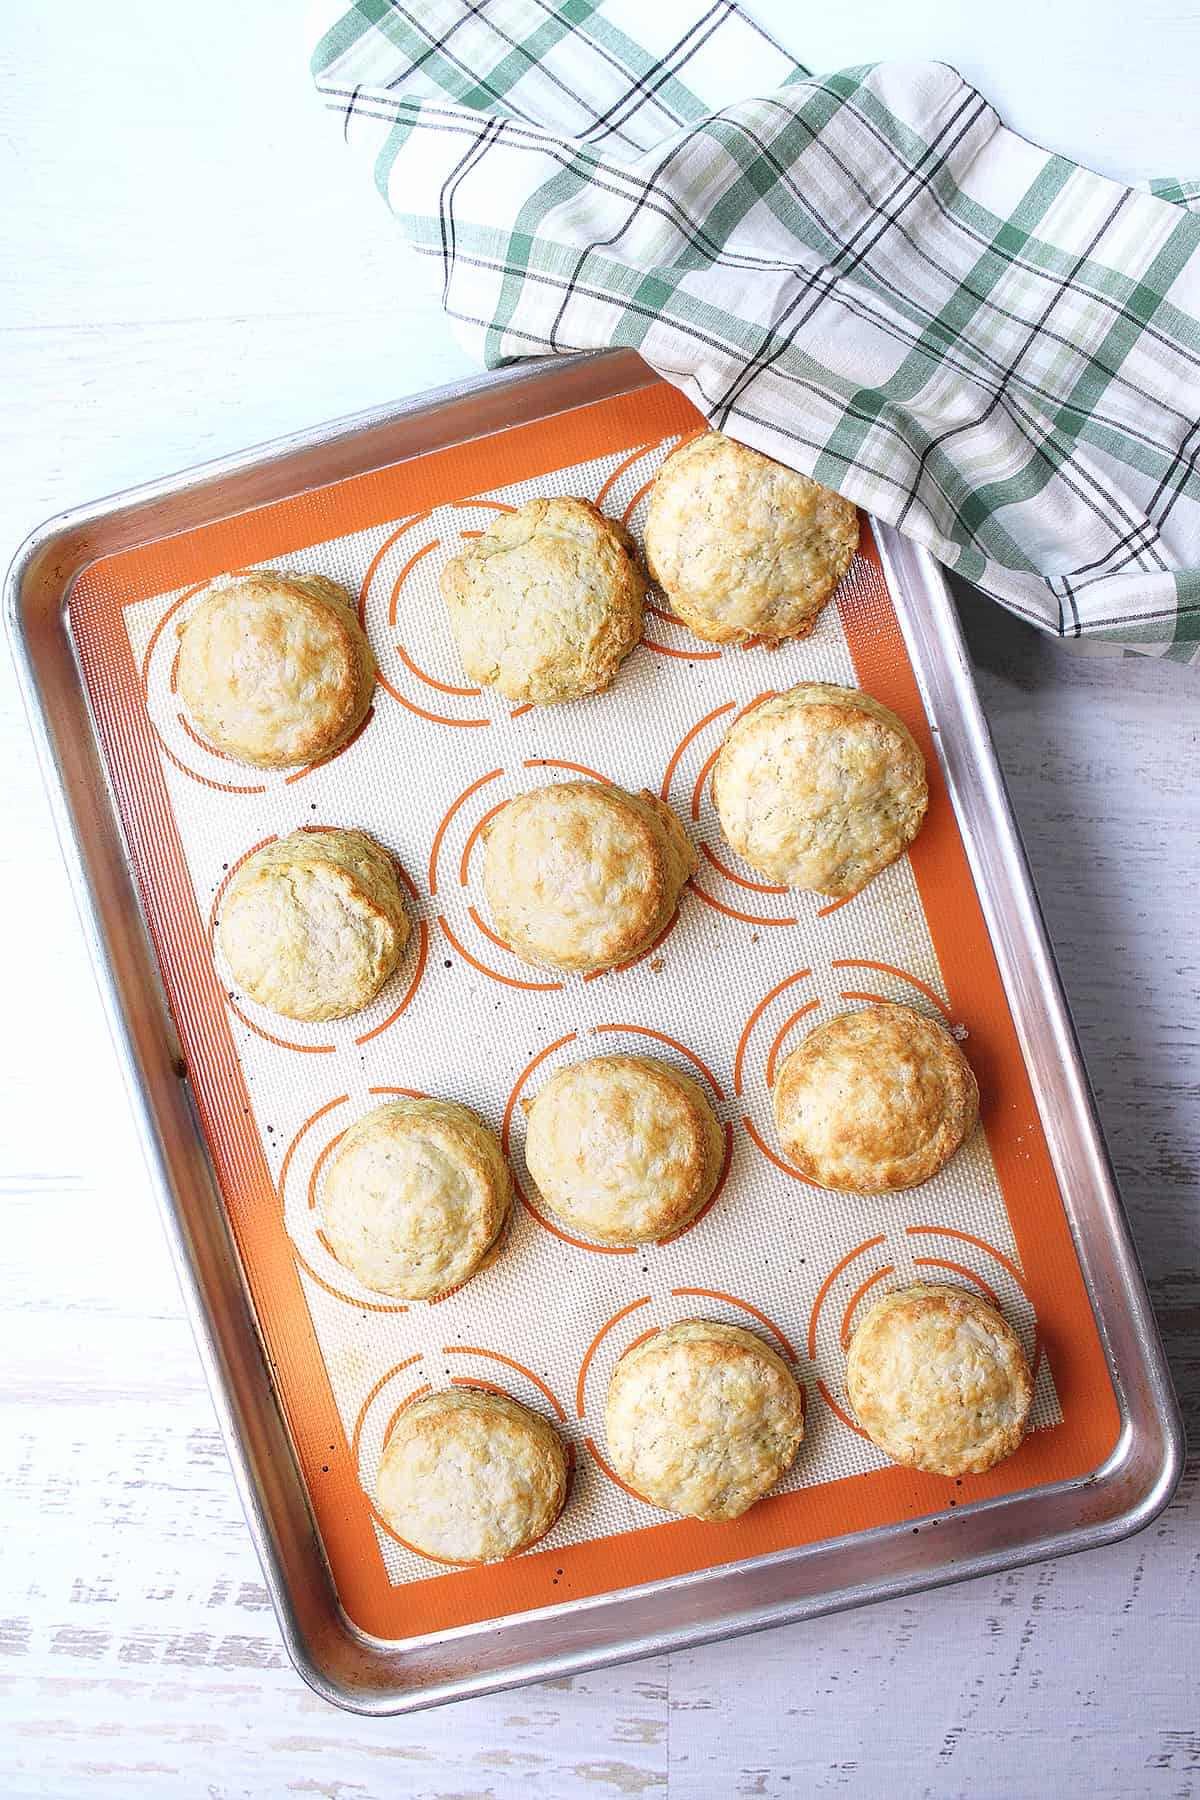 Baked southern buttermilk biscuits on cookie sheet.